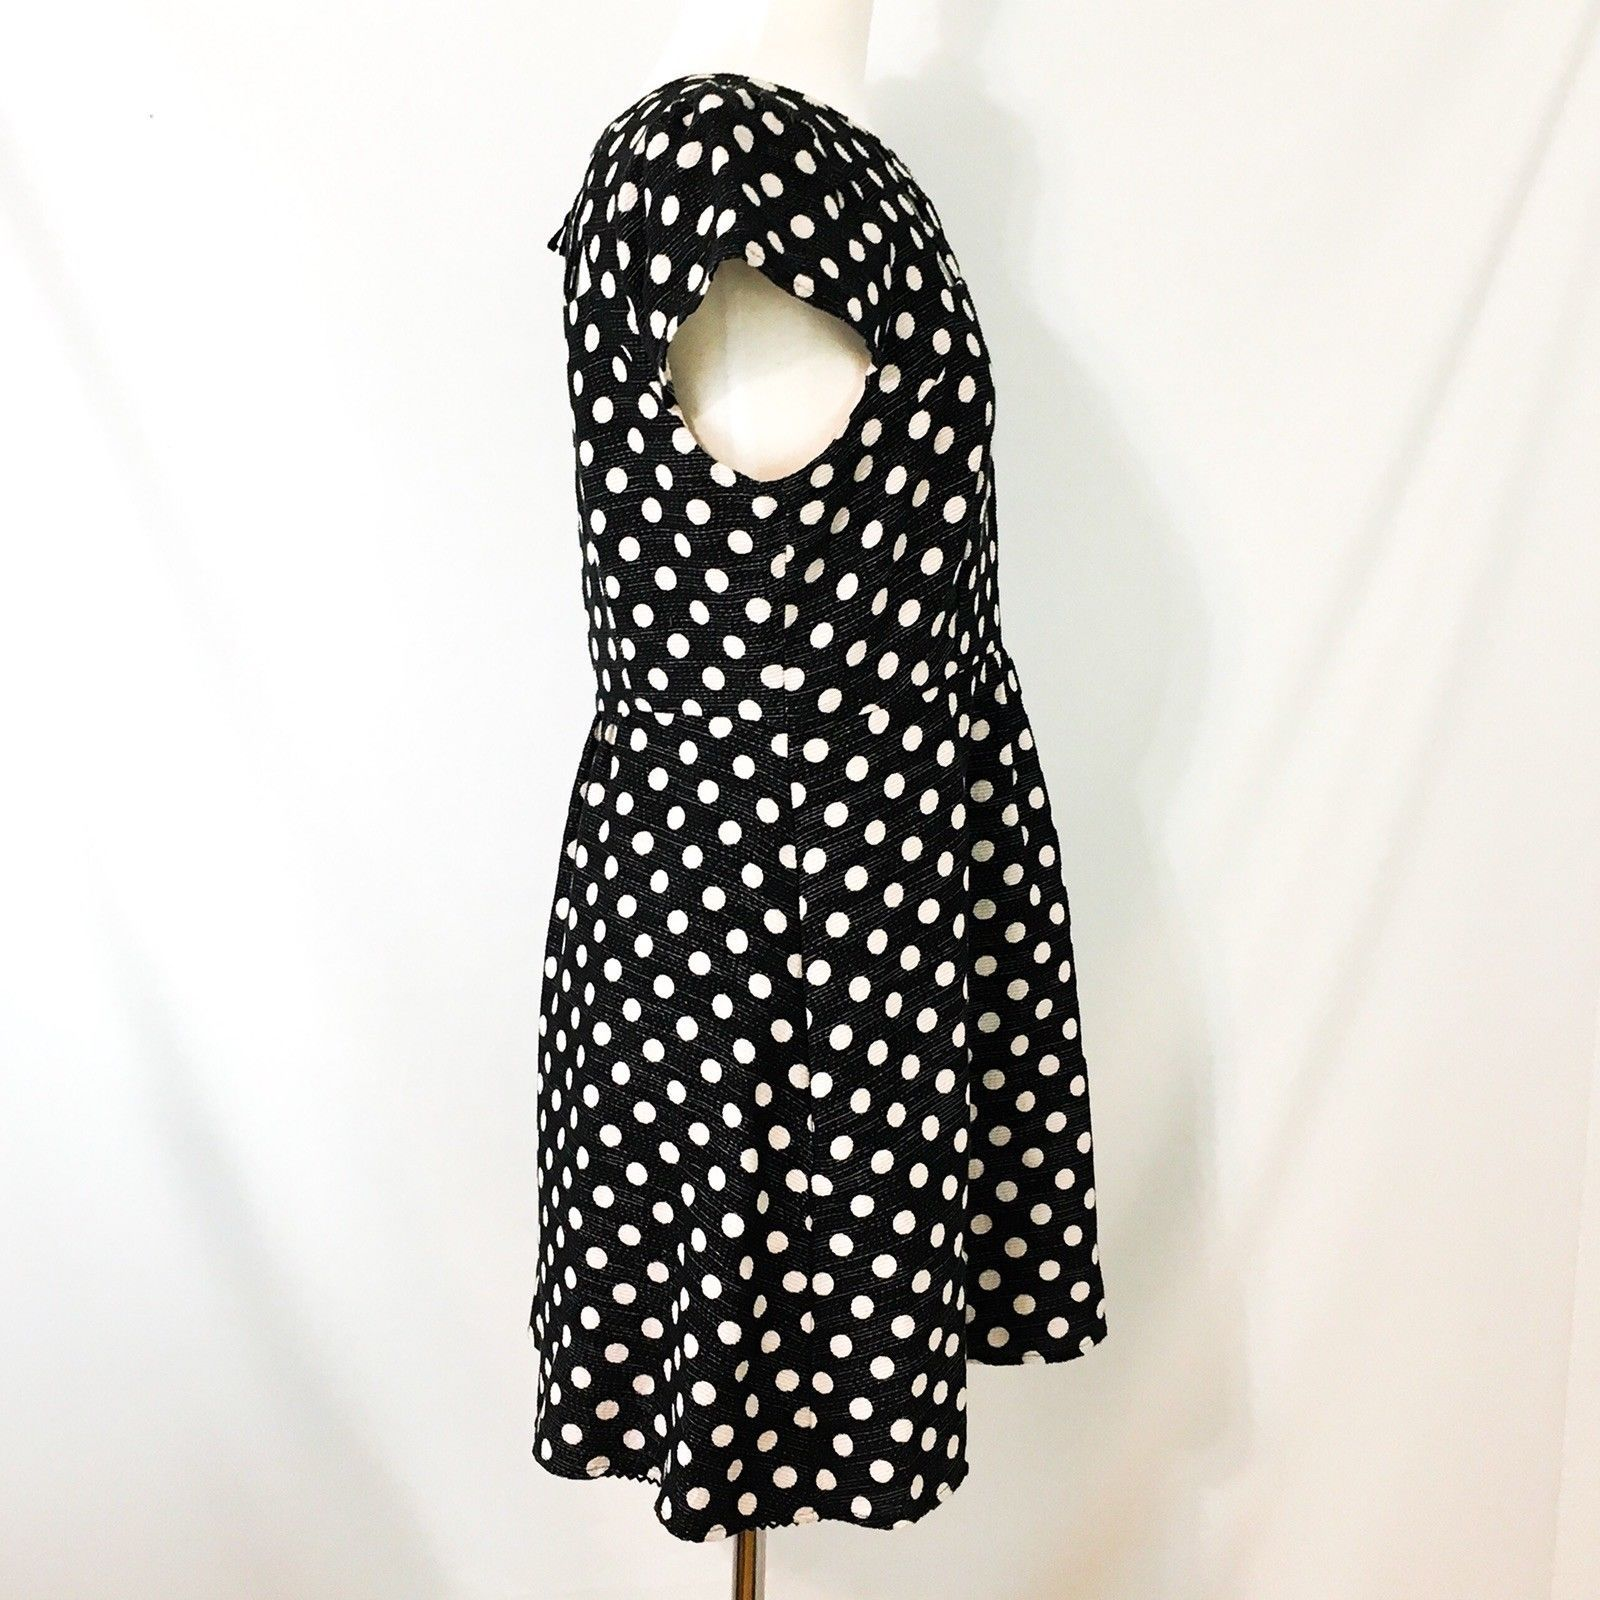 Maeve Anthropologie Nikola Polka Dot Dress 10P